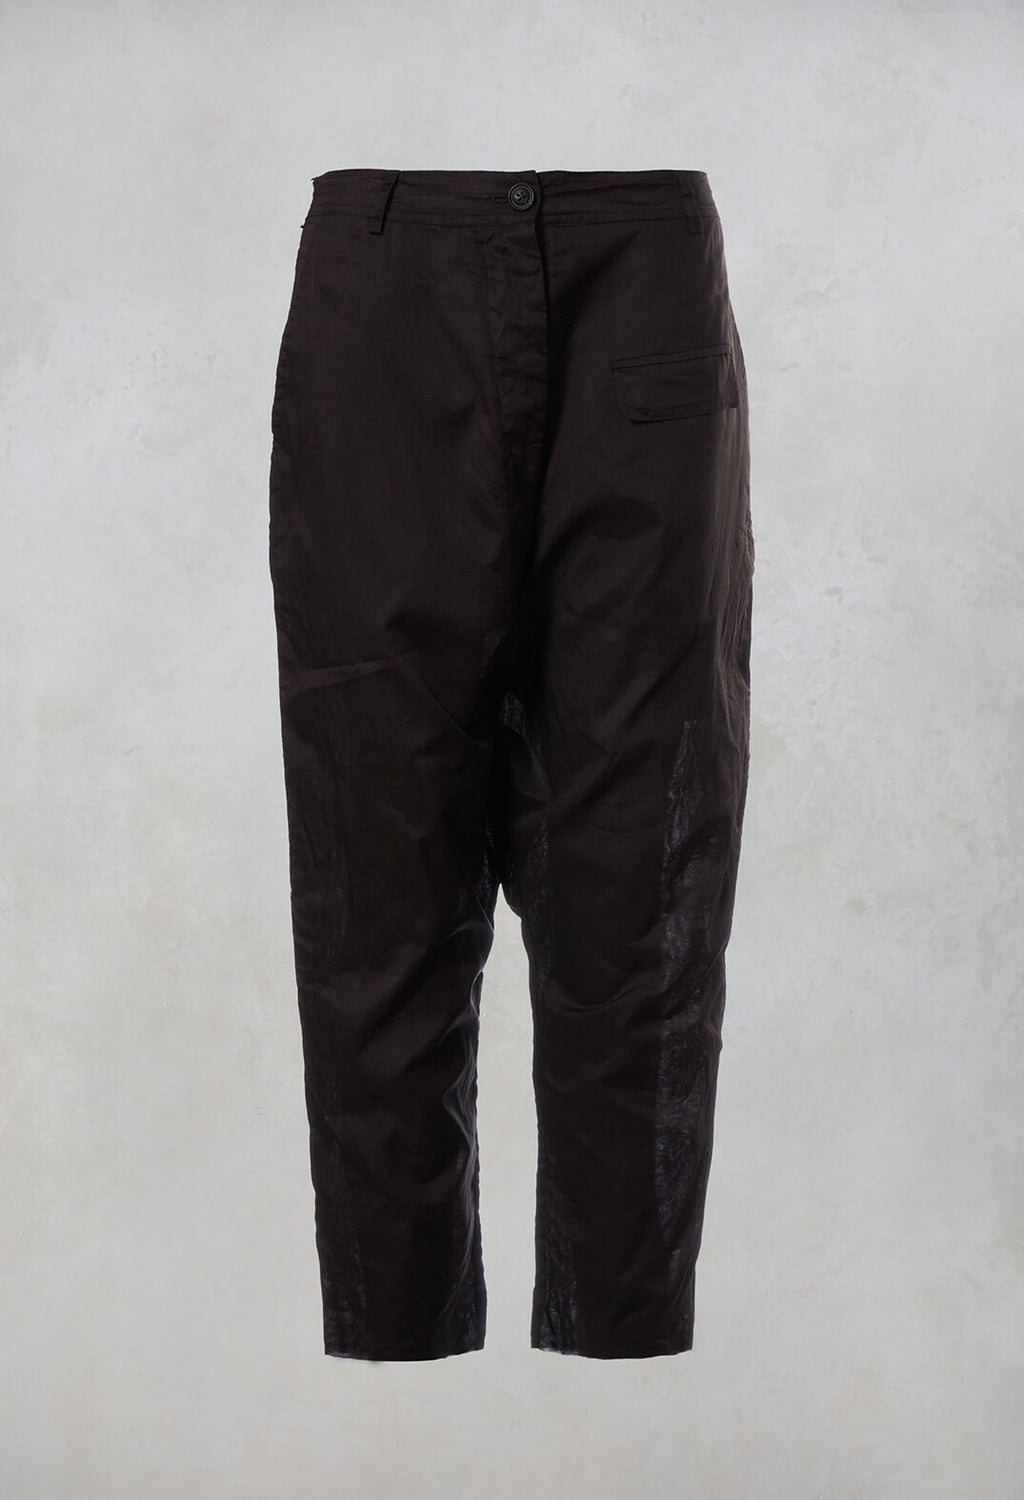 Drop Crotch Trousers in Brown